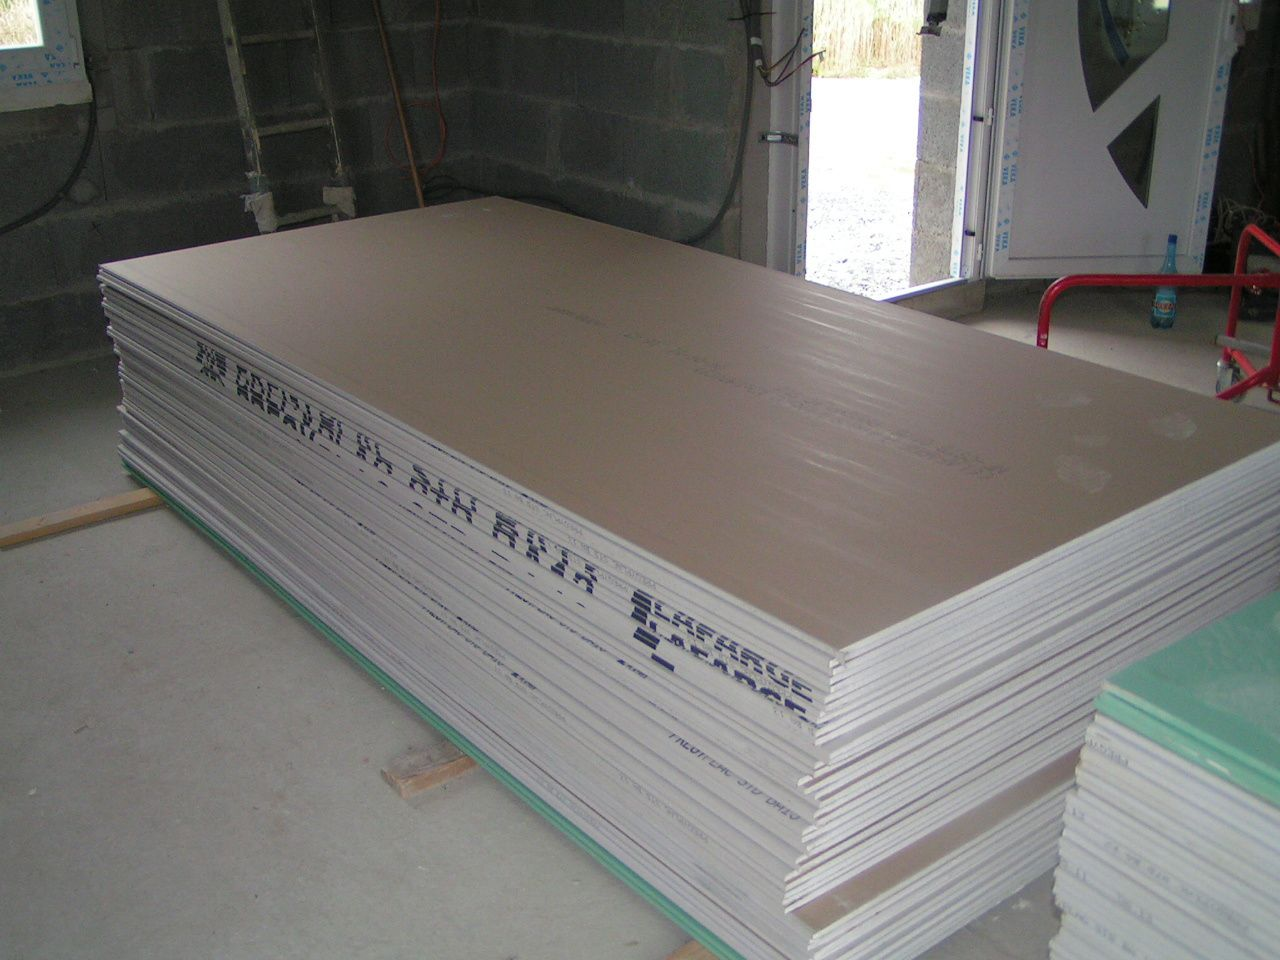 08 07 2011 placo plafond raillage et isolation des for Plaque pour plafond a coller